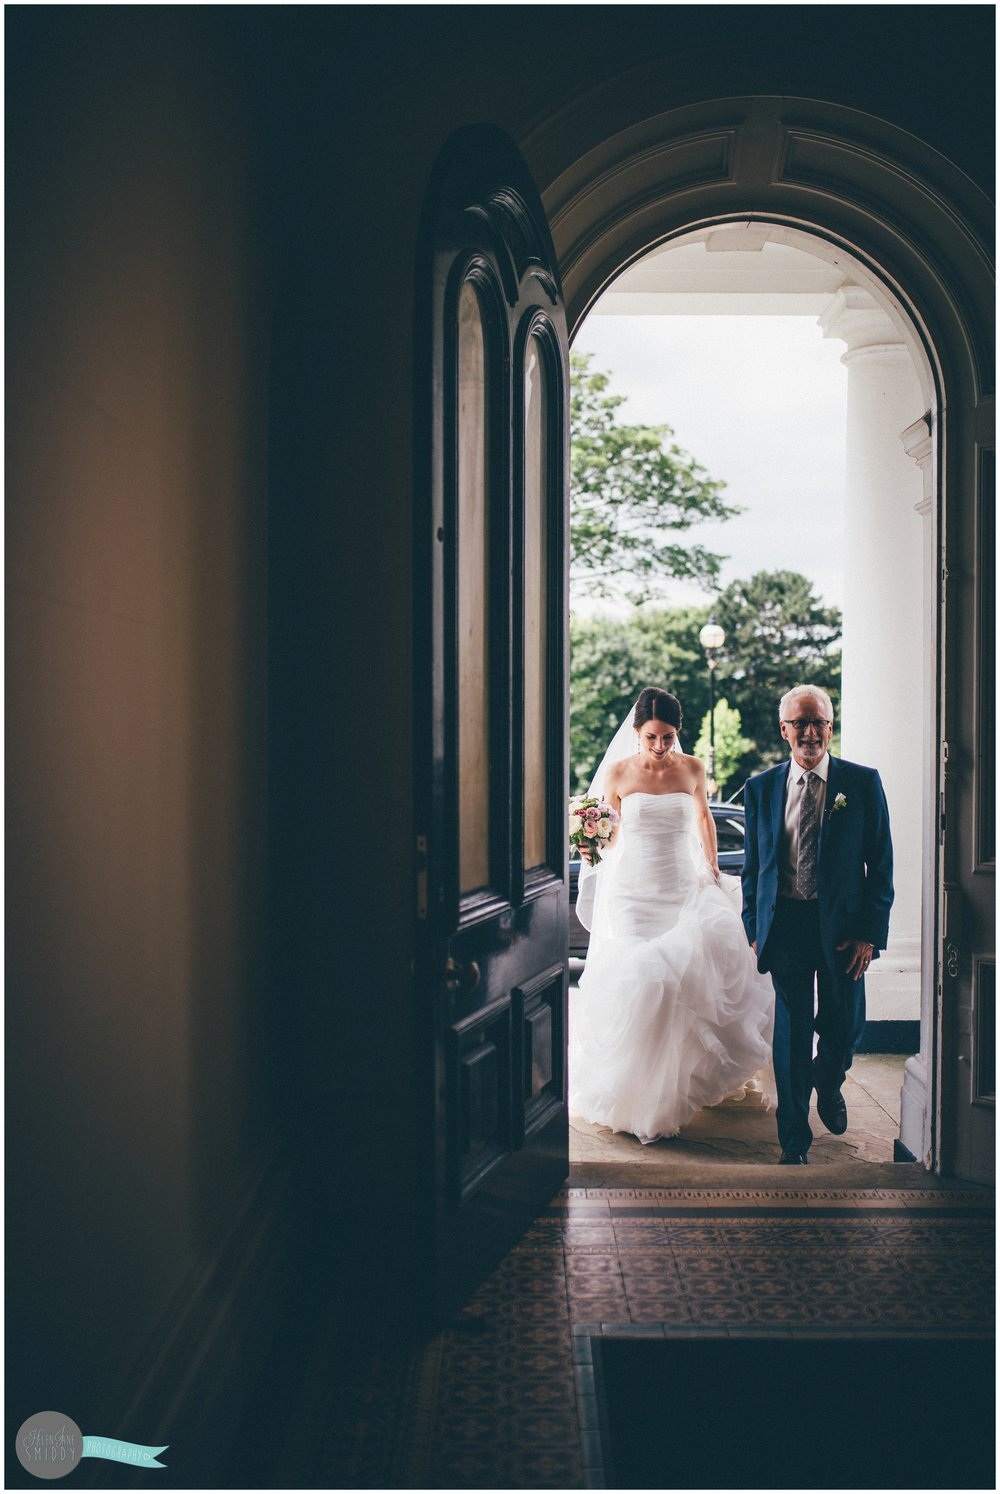 cheshire-runcrn-town-hall-chester-chesterfields-wedding-weddingphotography-photography-blue-skies-love-wedding-day-weddingday-wedding-gown-weddingdress-flowers-guest-manofhonour-maidofhonour